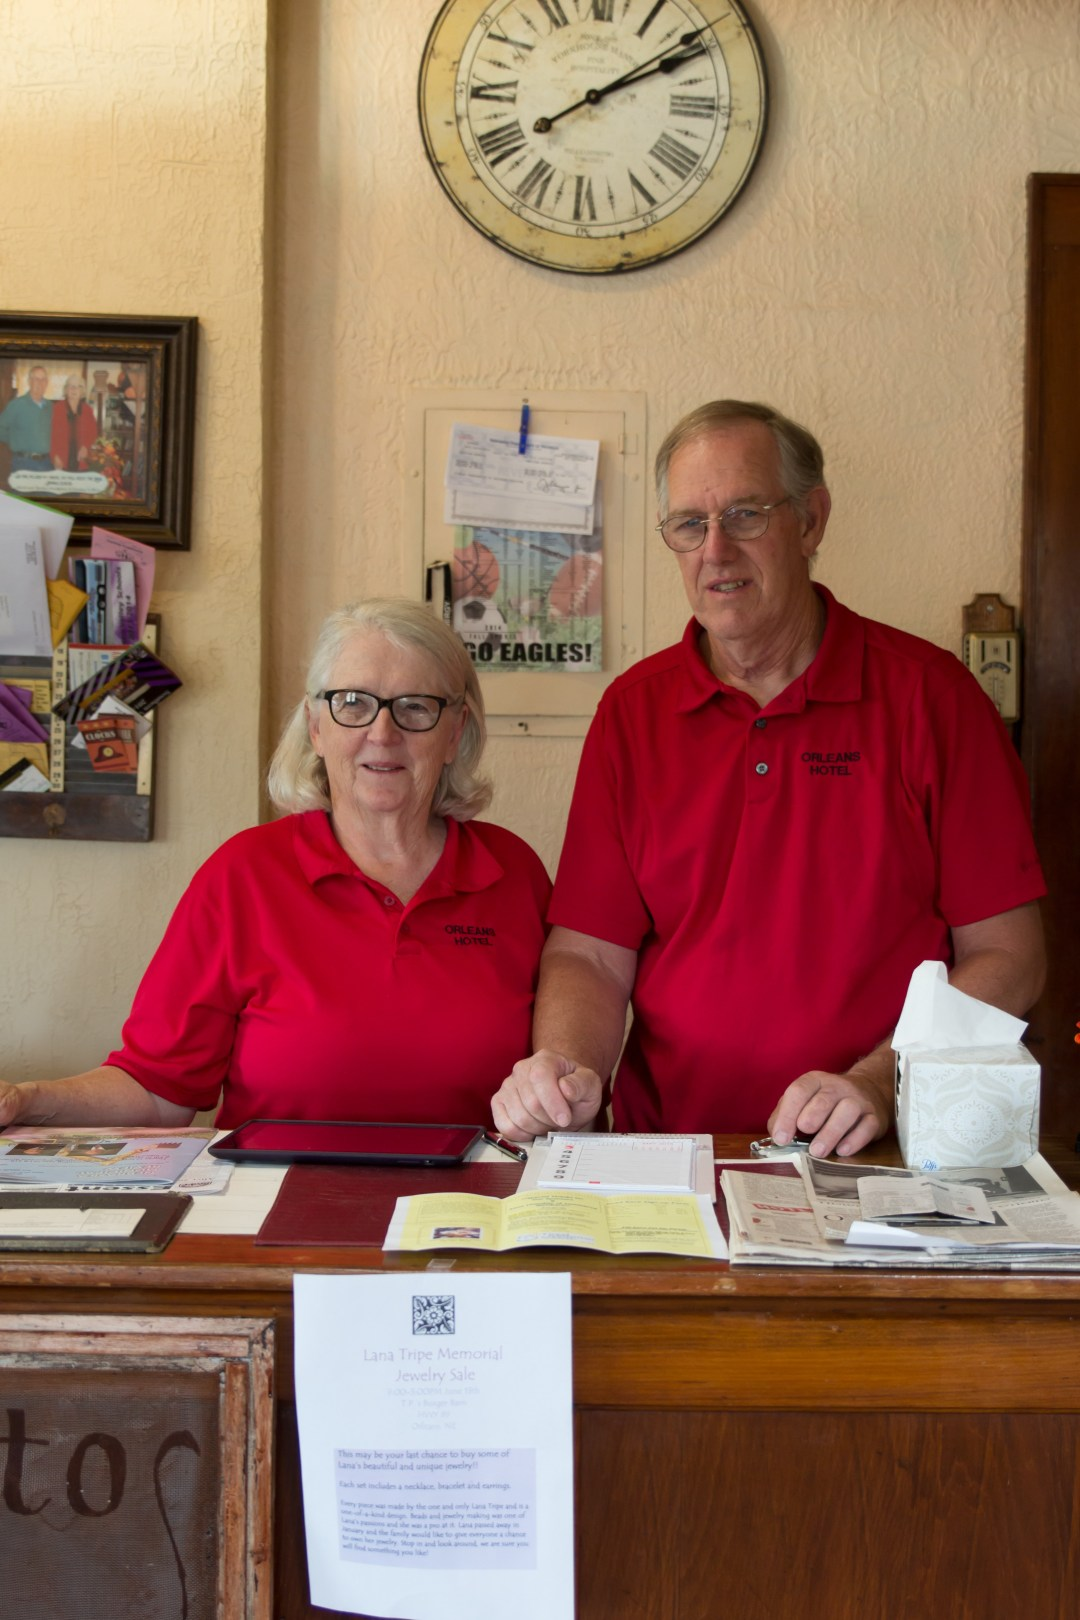 David and Marilyn Snodgrass welcome their guests at the front desk of the Orleans Hotel, Orleans, NE